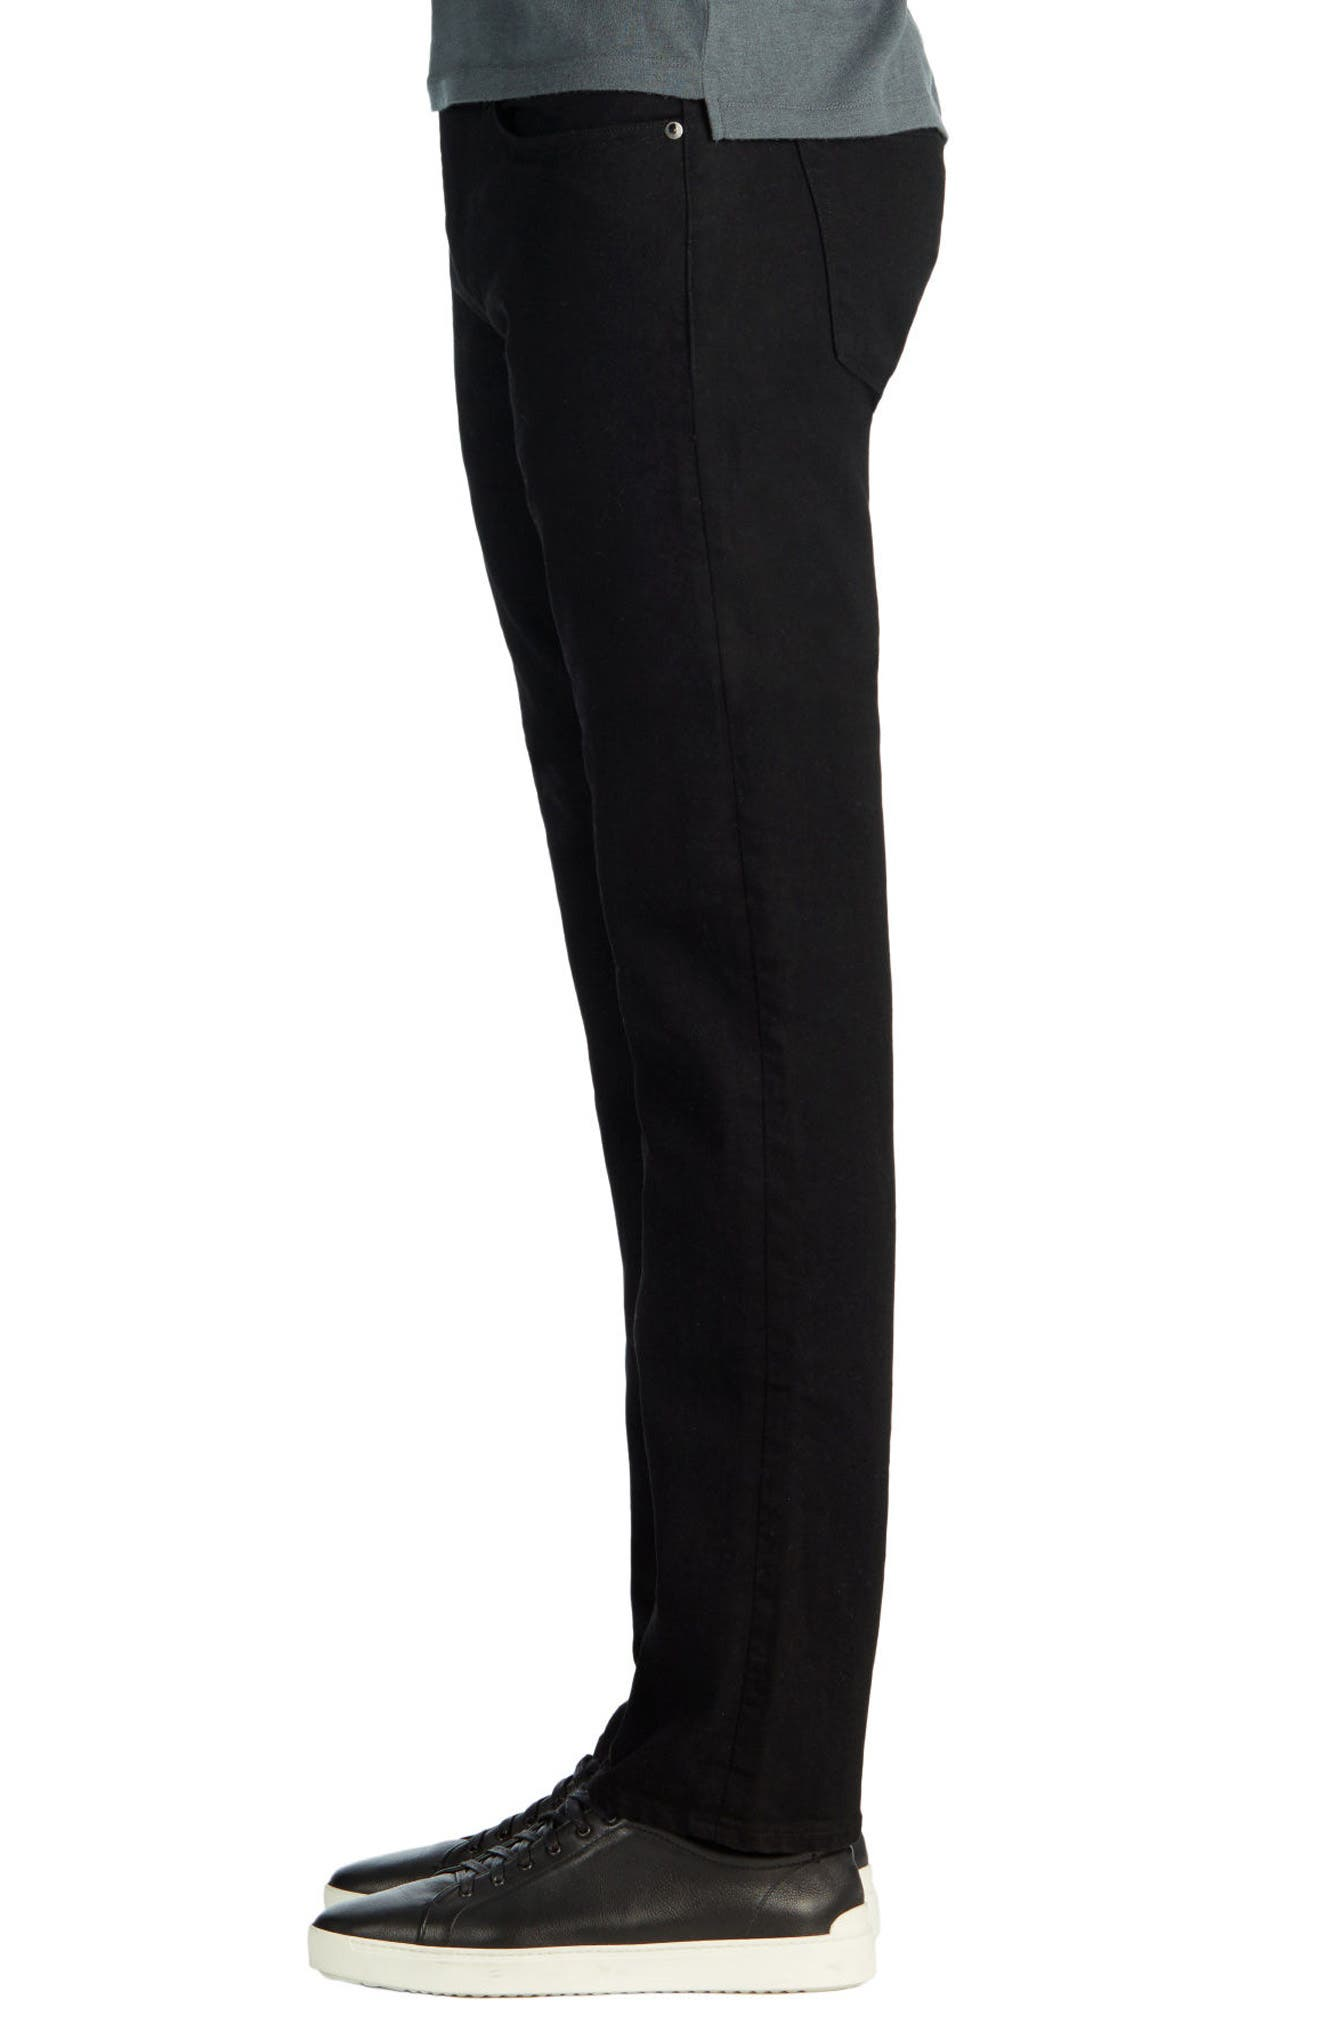 J BRAND,                             Kane Slim Straight Leg Jeans,                             Alternate thumbnail 3, color,                             TRIVOR BLACK